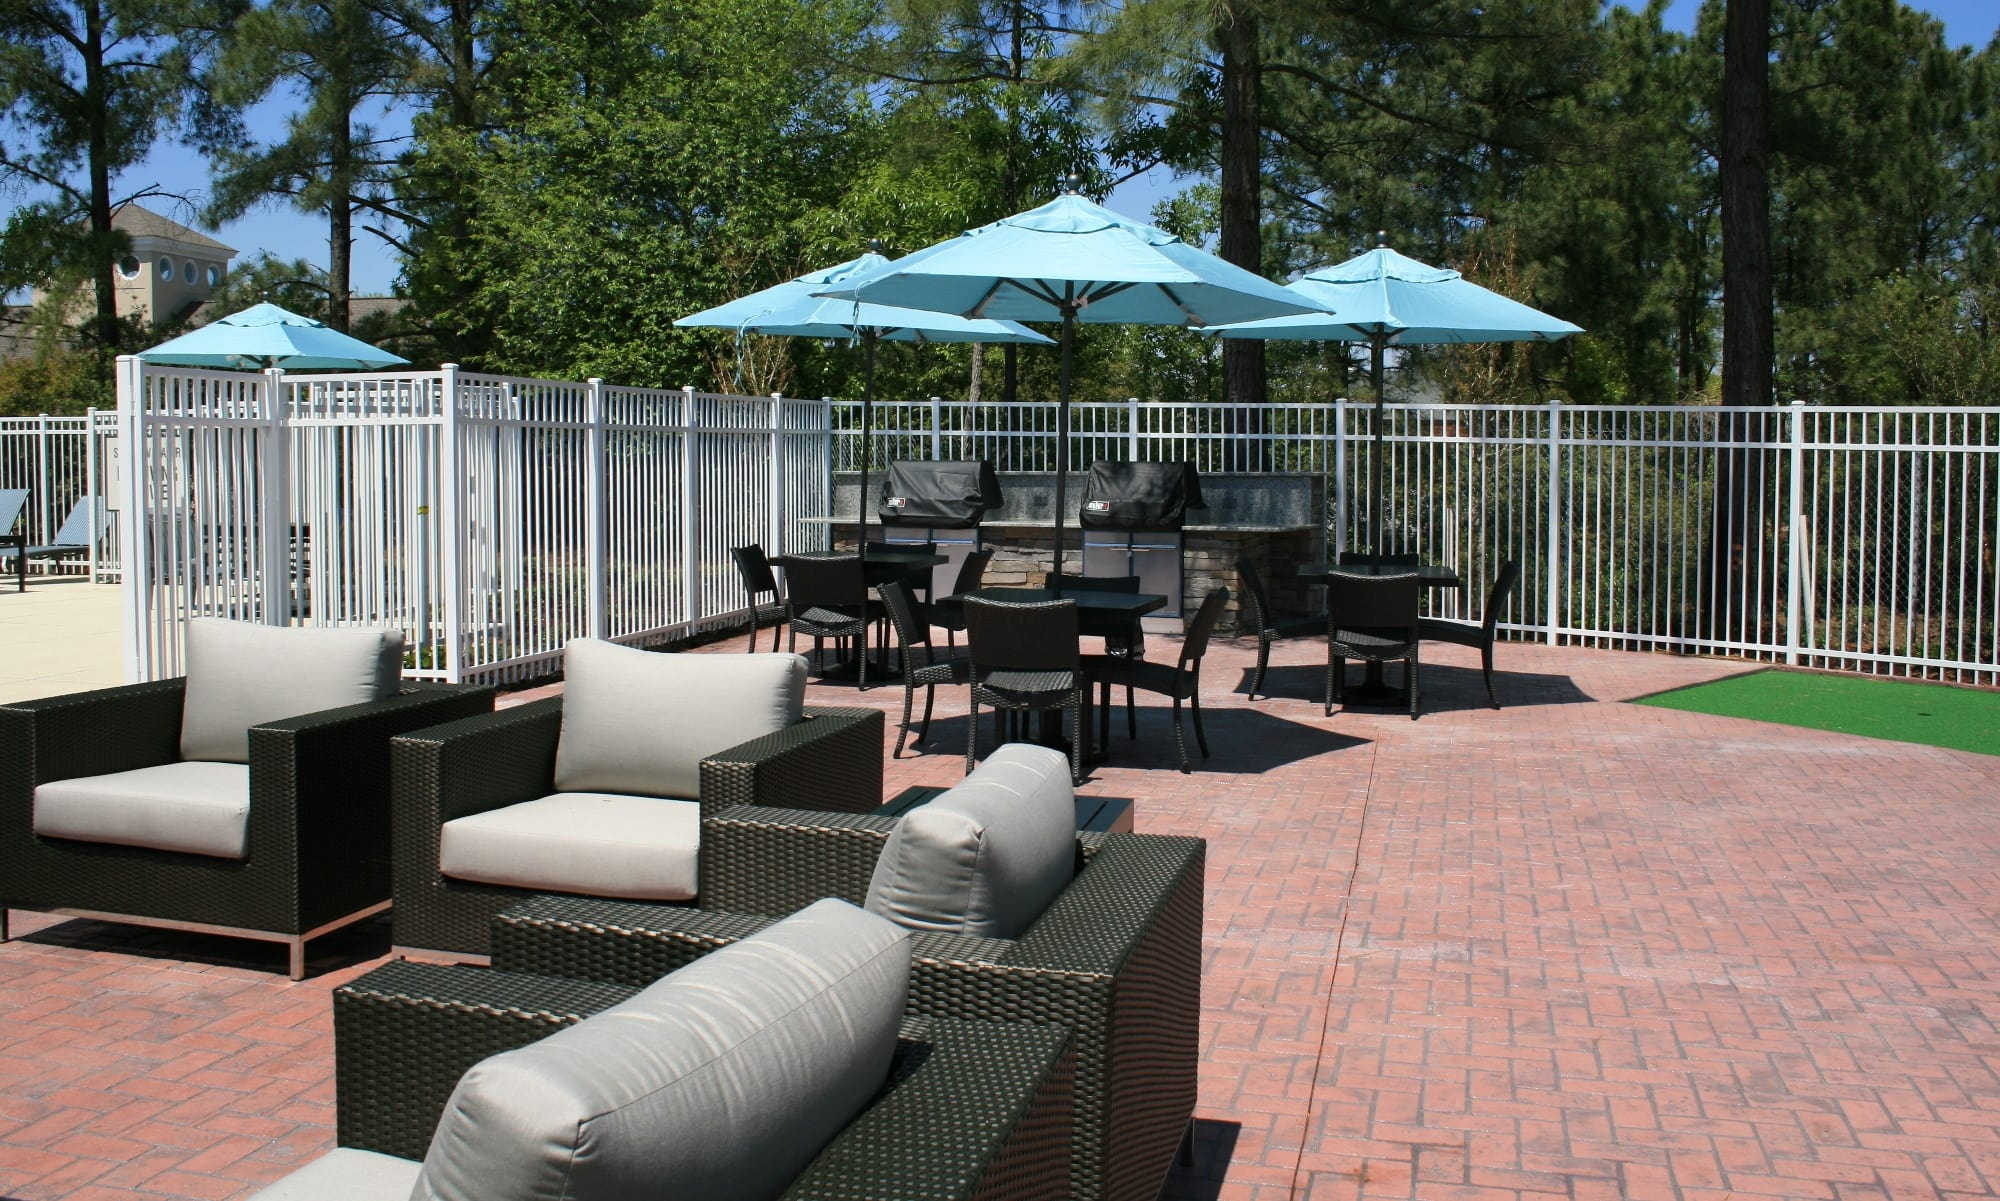 The Grove at Spring Valley has a great courtyard